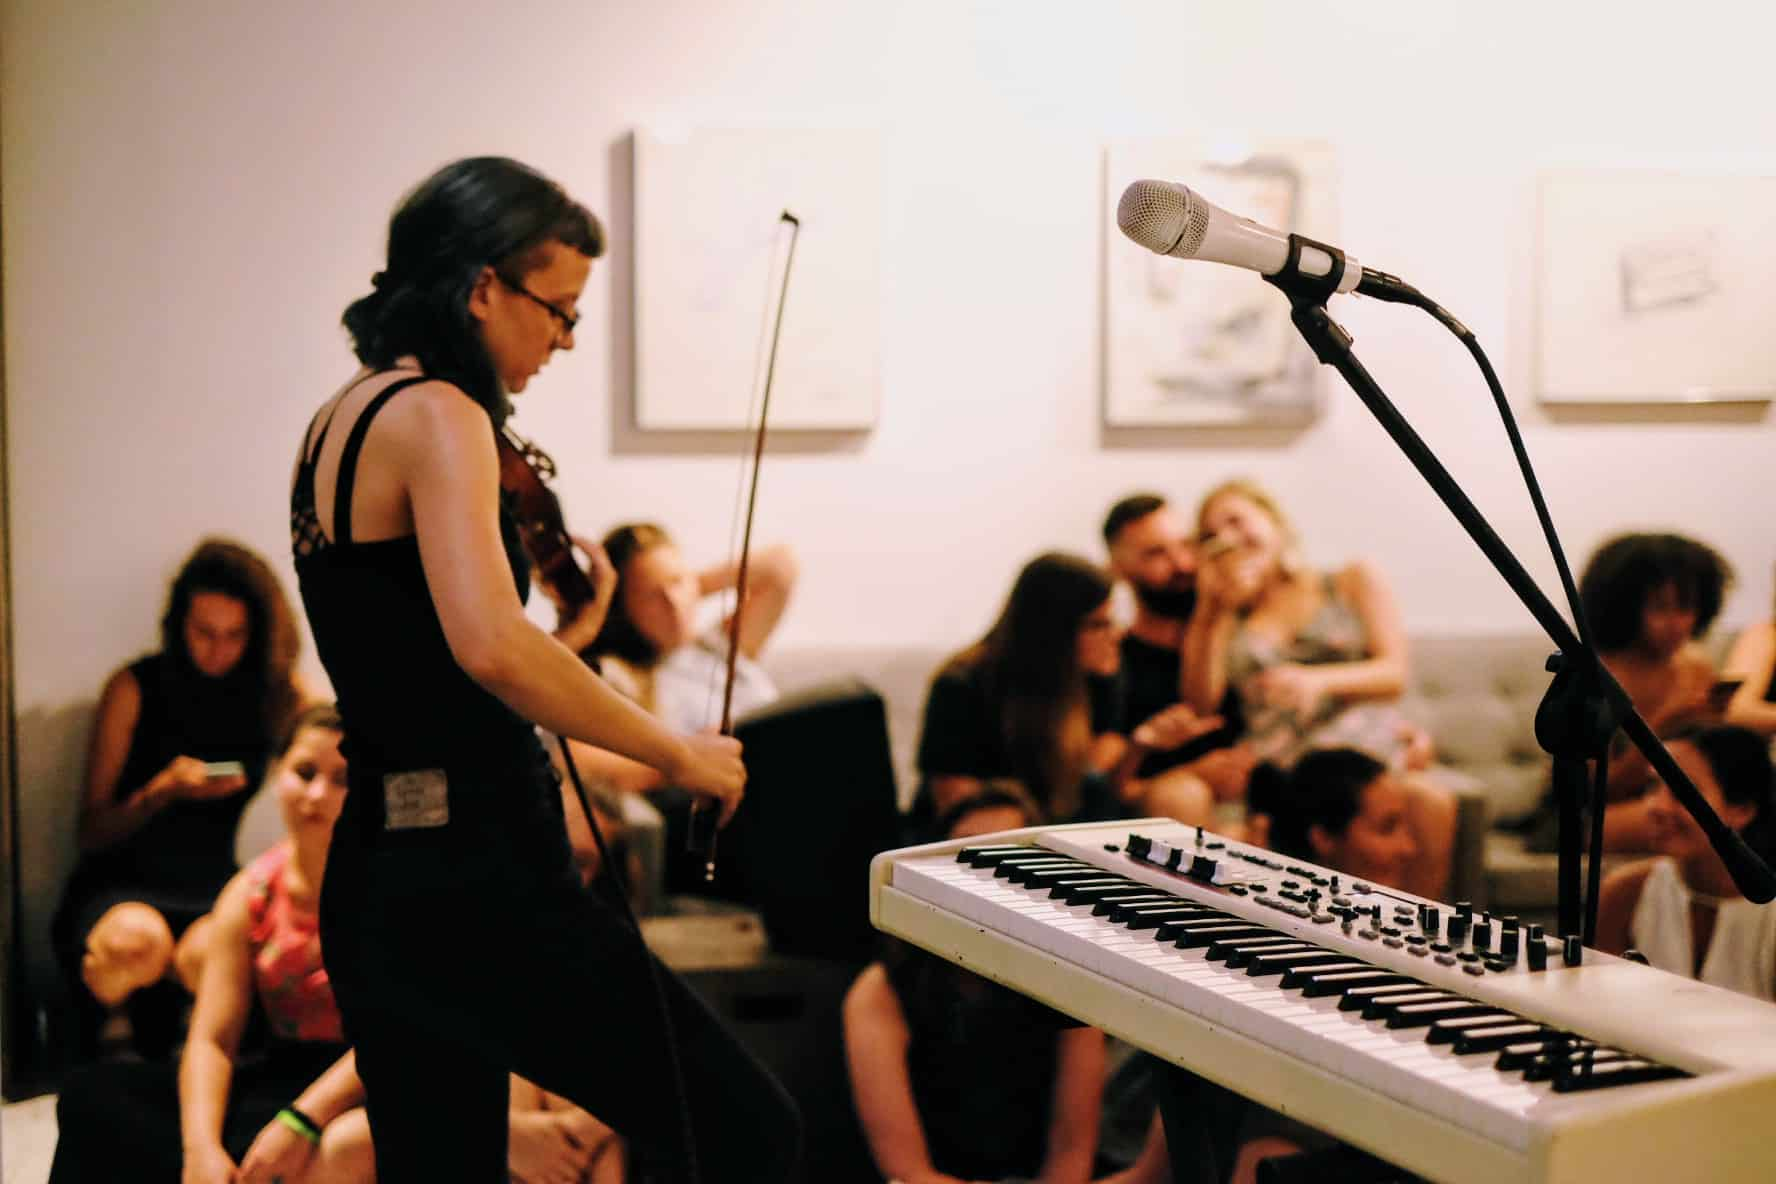 Celebrating Music With Sofar Sounds The Yard Space To Work